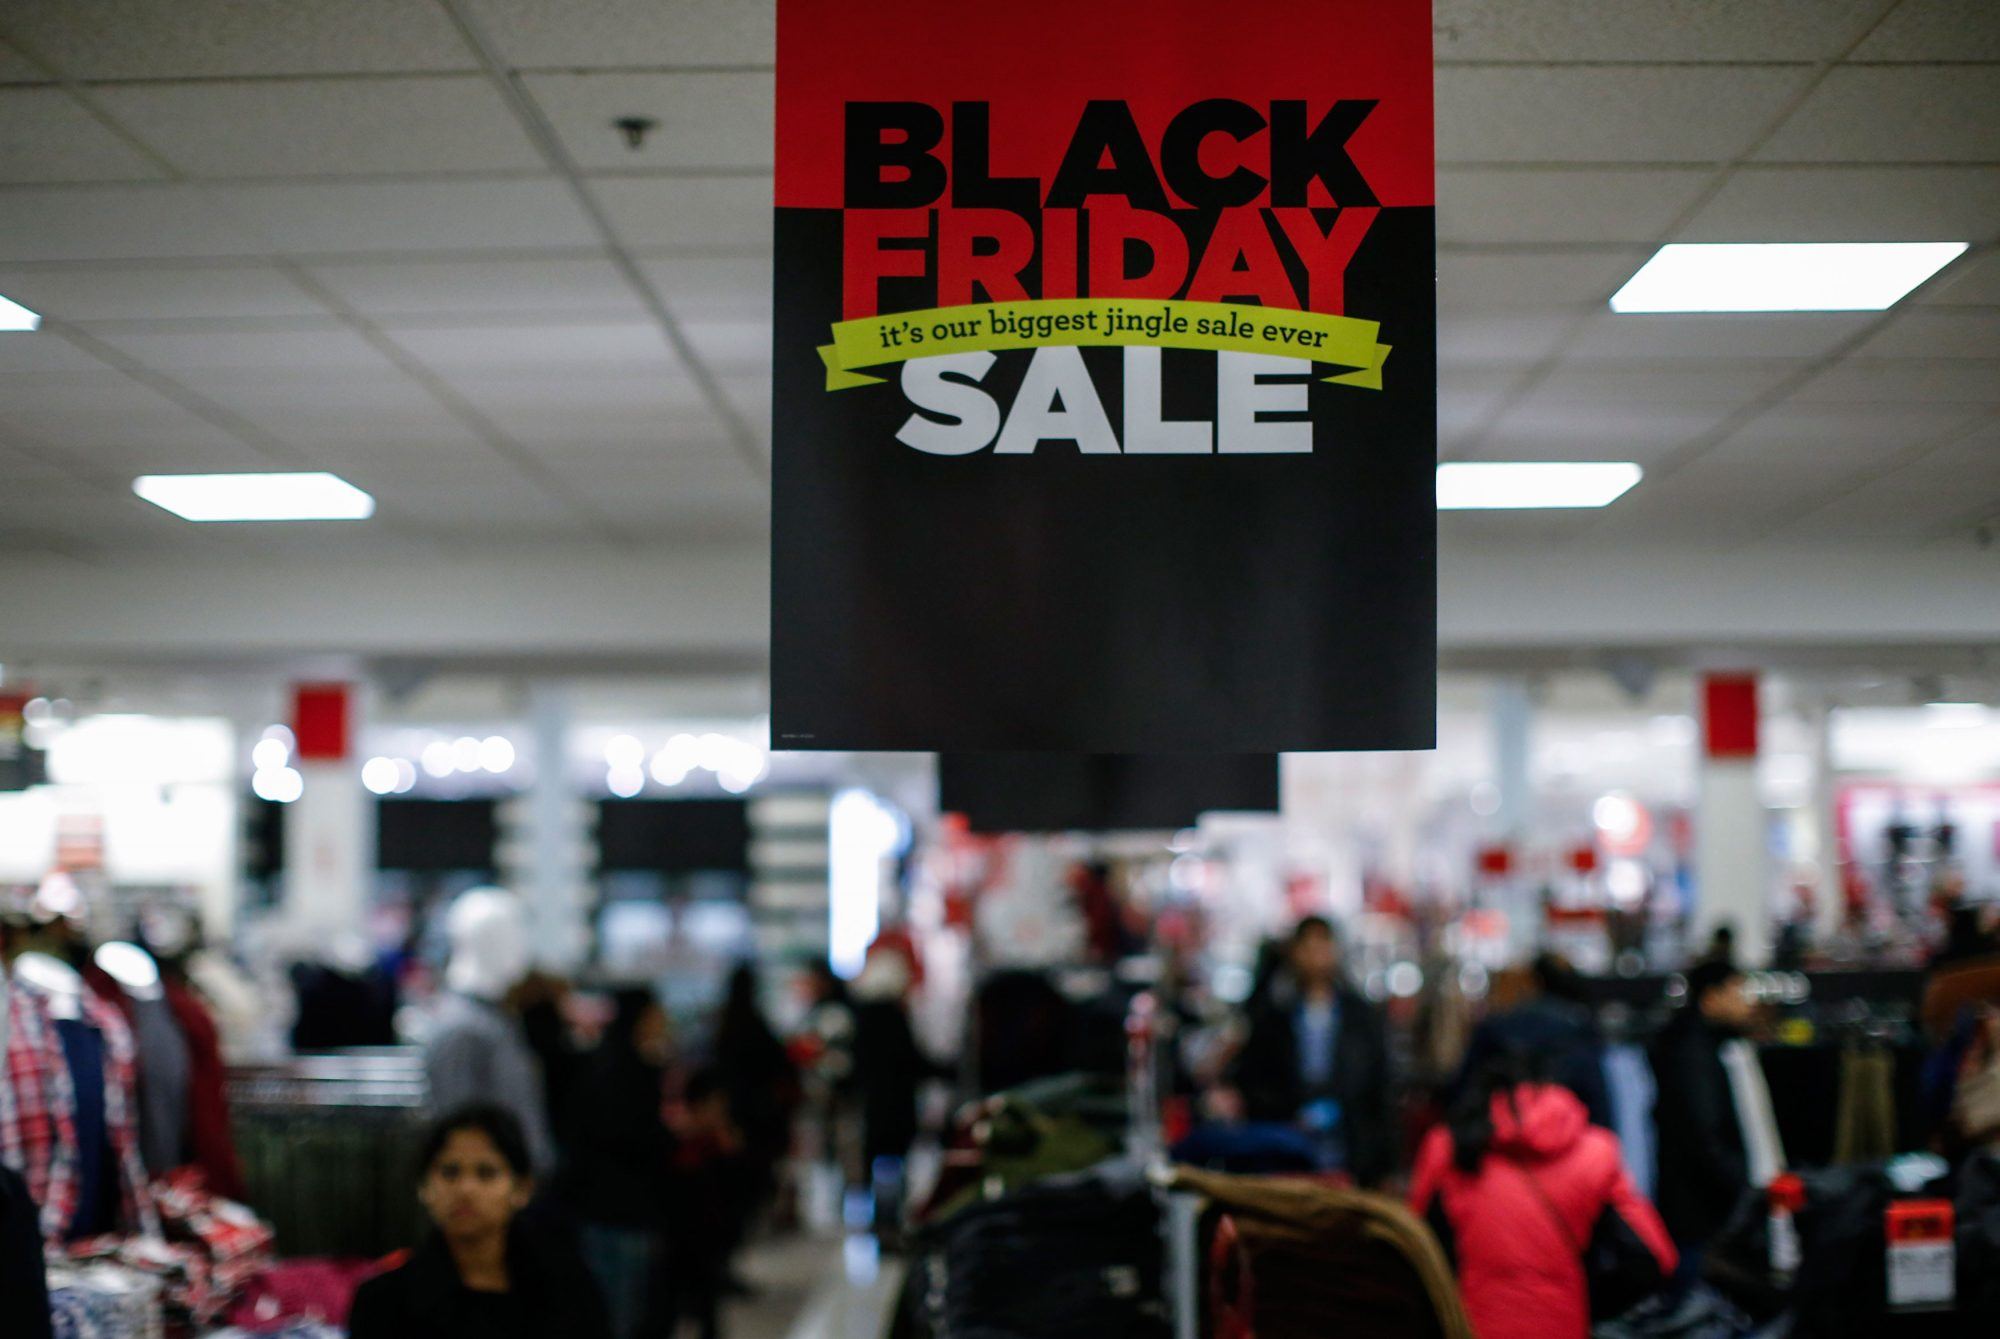 Black Friday Sale at JCPenney